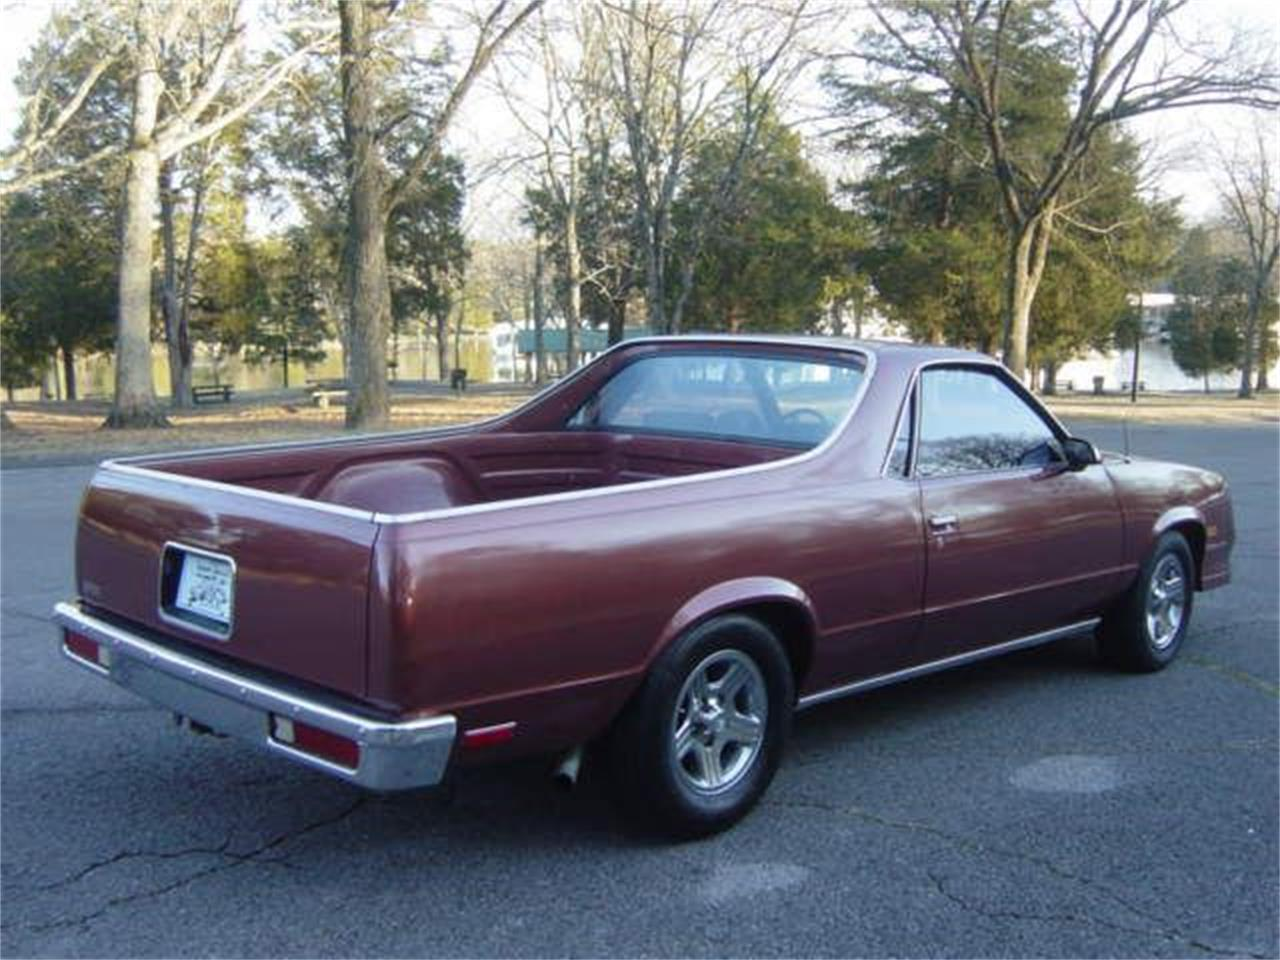 Large Picture of '86 Chevrolet El Camino located in Tennessee - MNEH